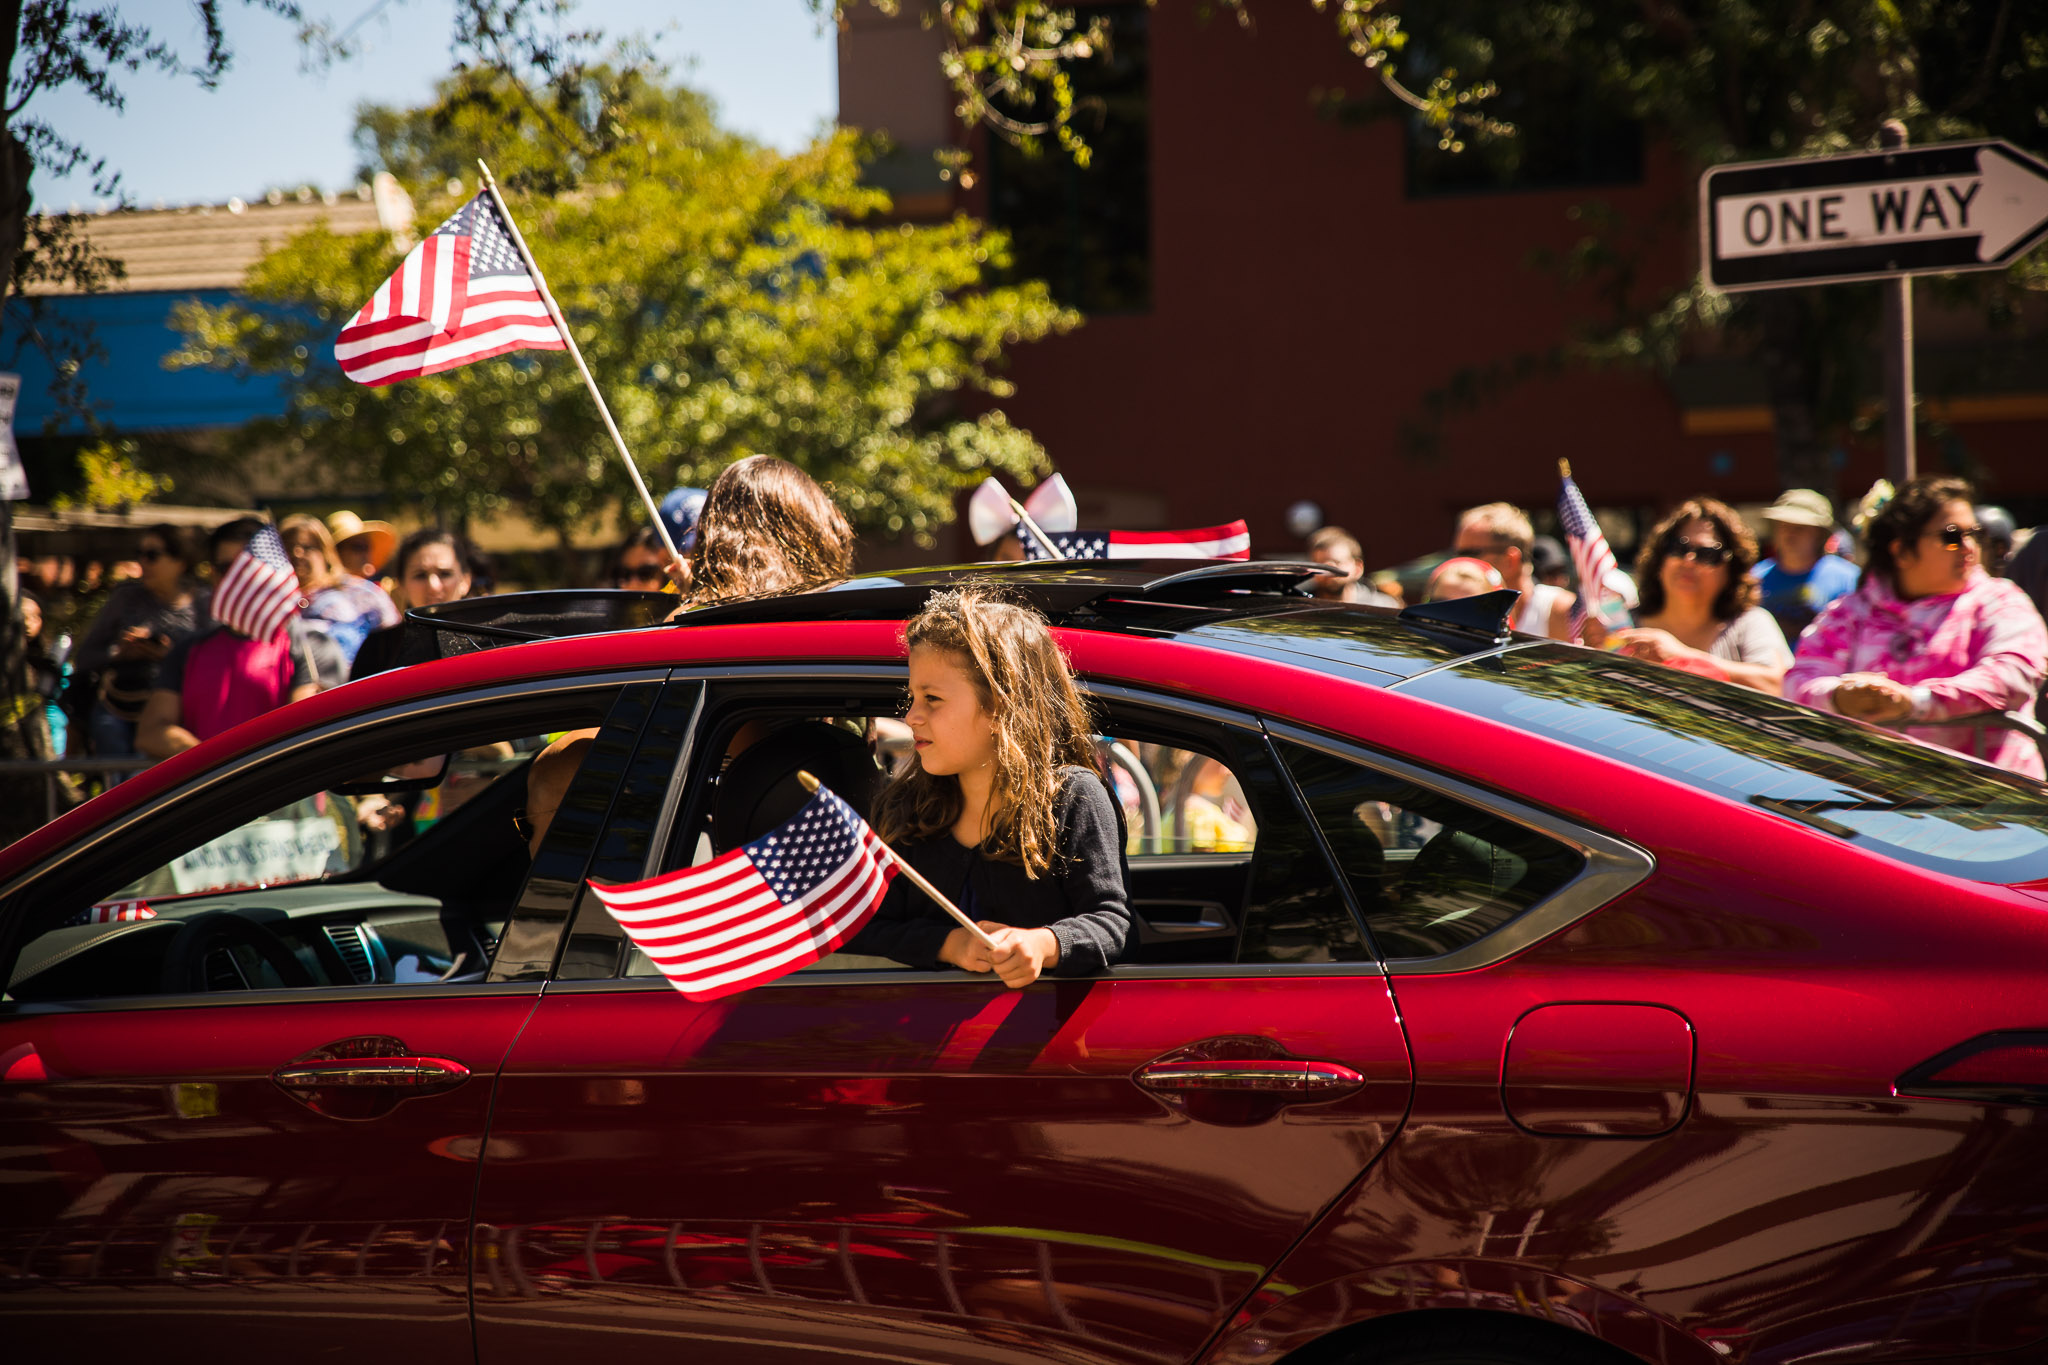 Archer_Inspired_Photography_Morgan_Hill_California_4th_of_july_parade-122.jpg